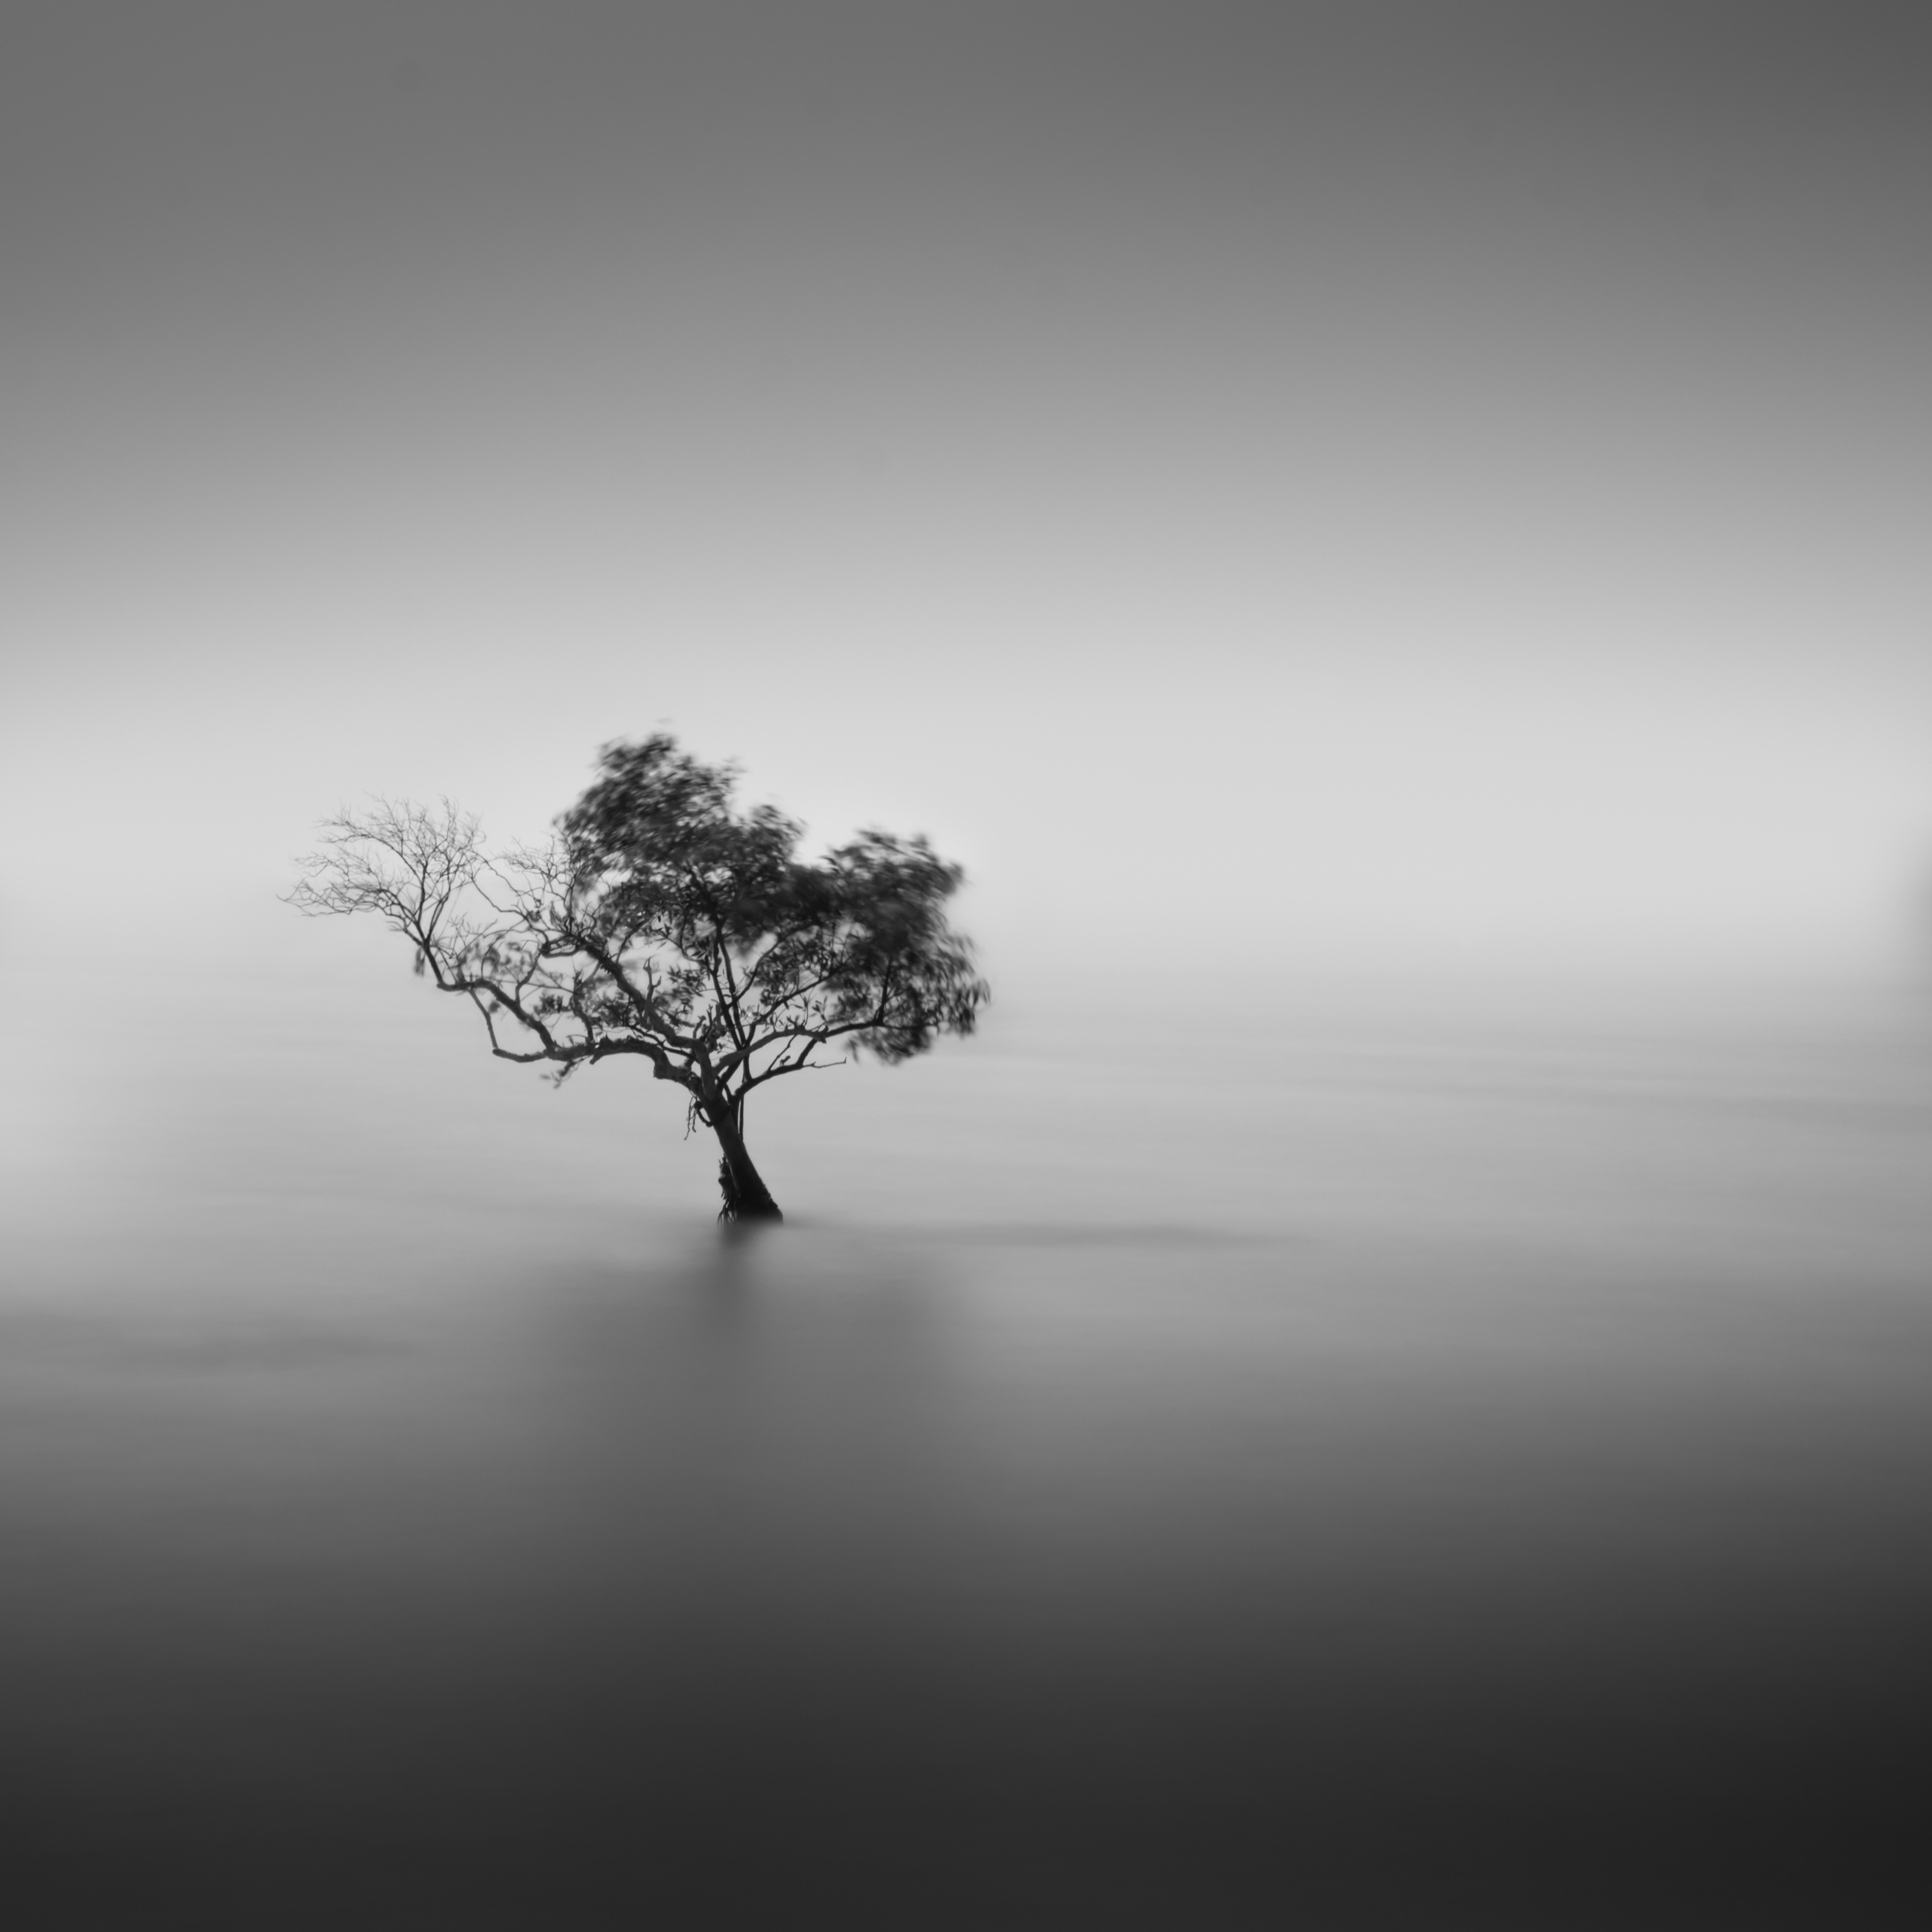 Minimalist Black and White Tree Alone iPad Wallpaper